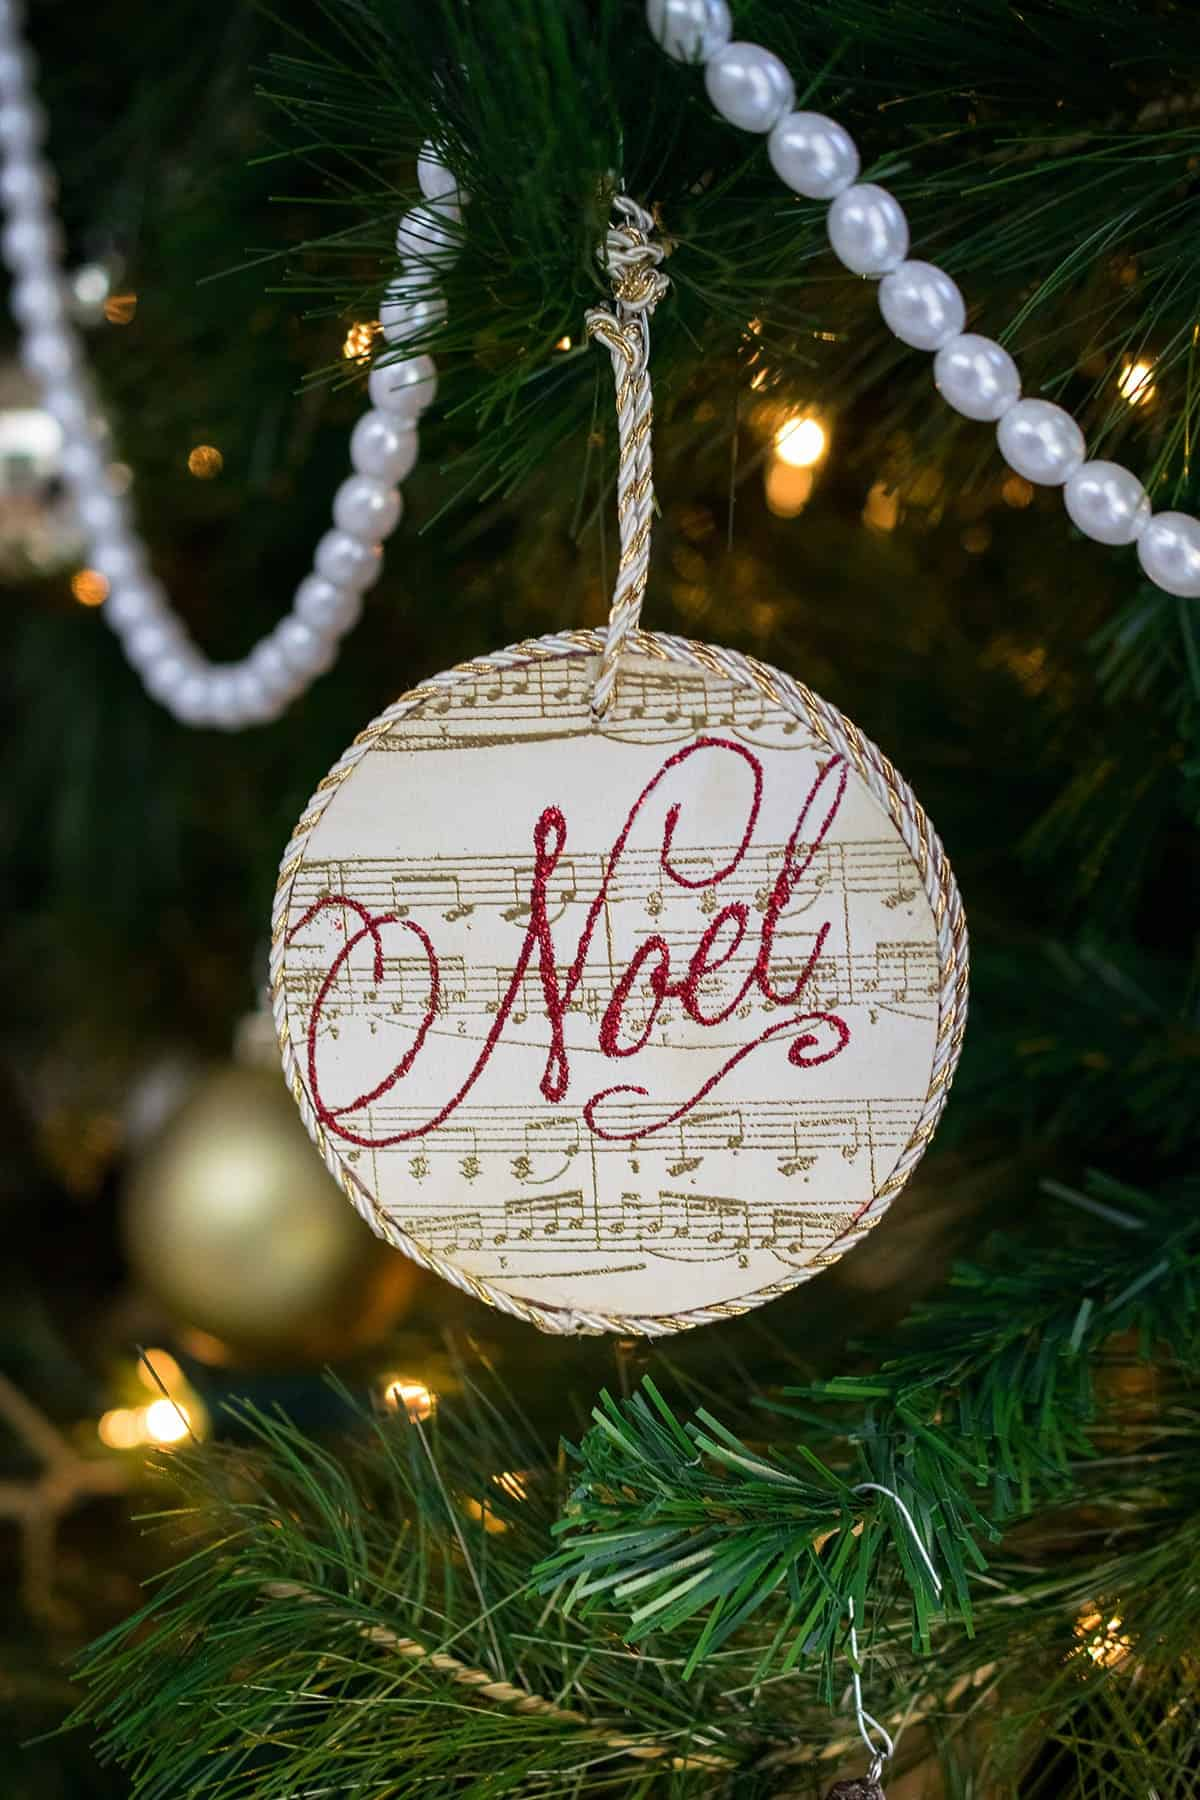 DIY round stamped ornament with gold sheet music print and Noel stamped in red lettering hanging from tree with beaded garland.